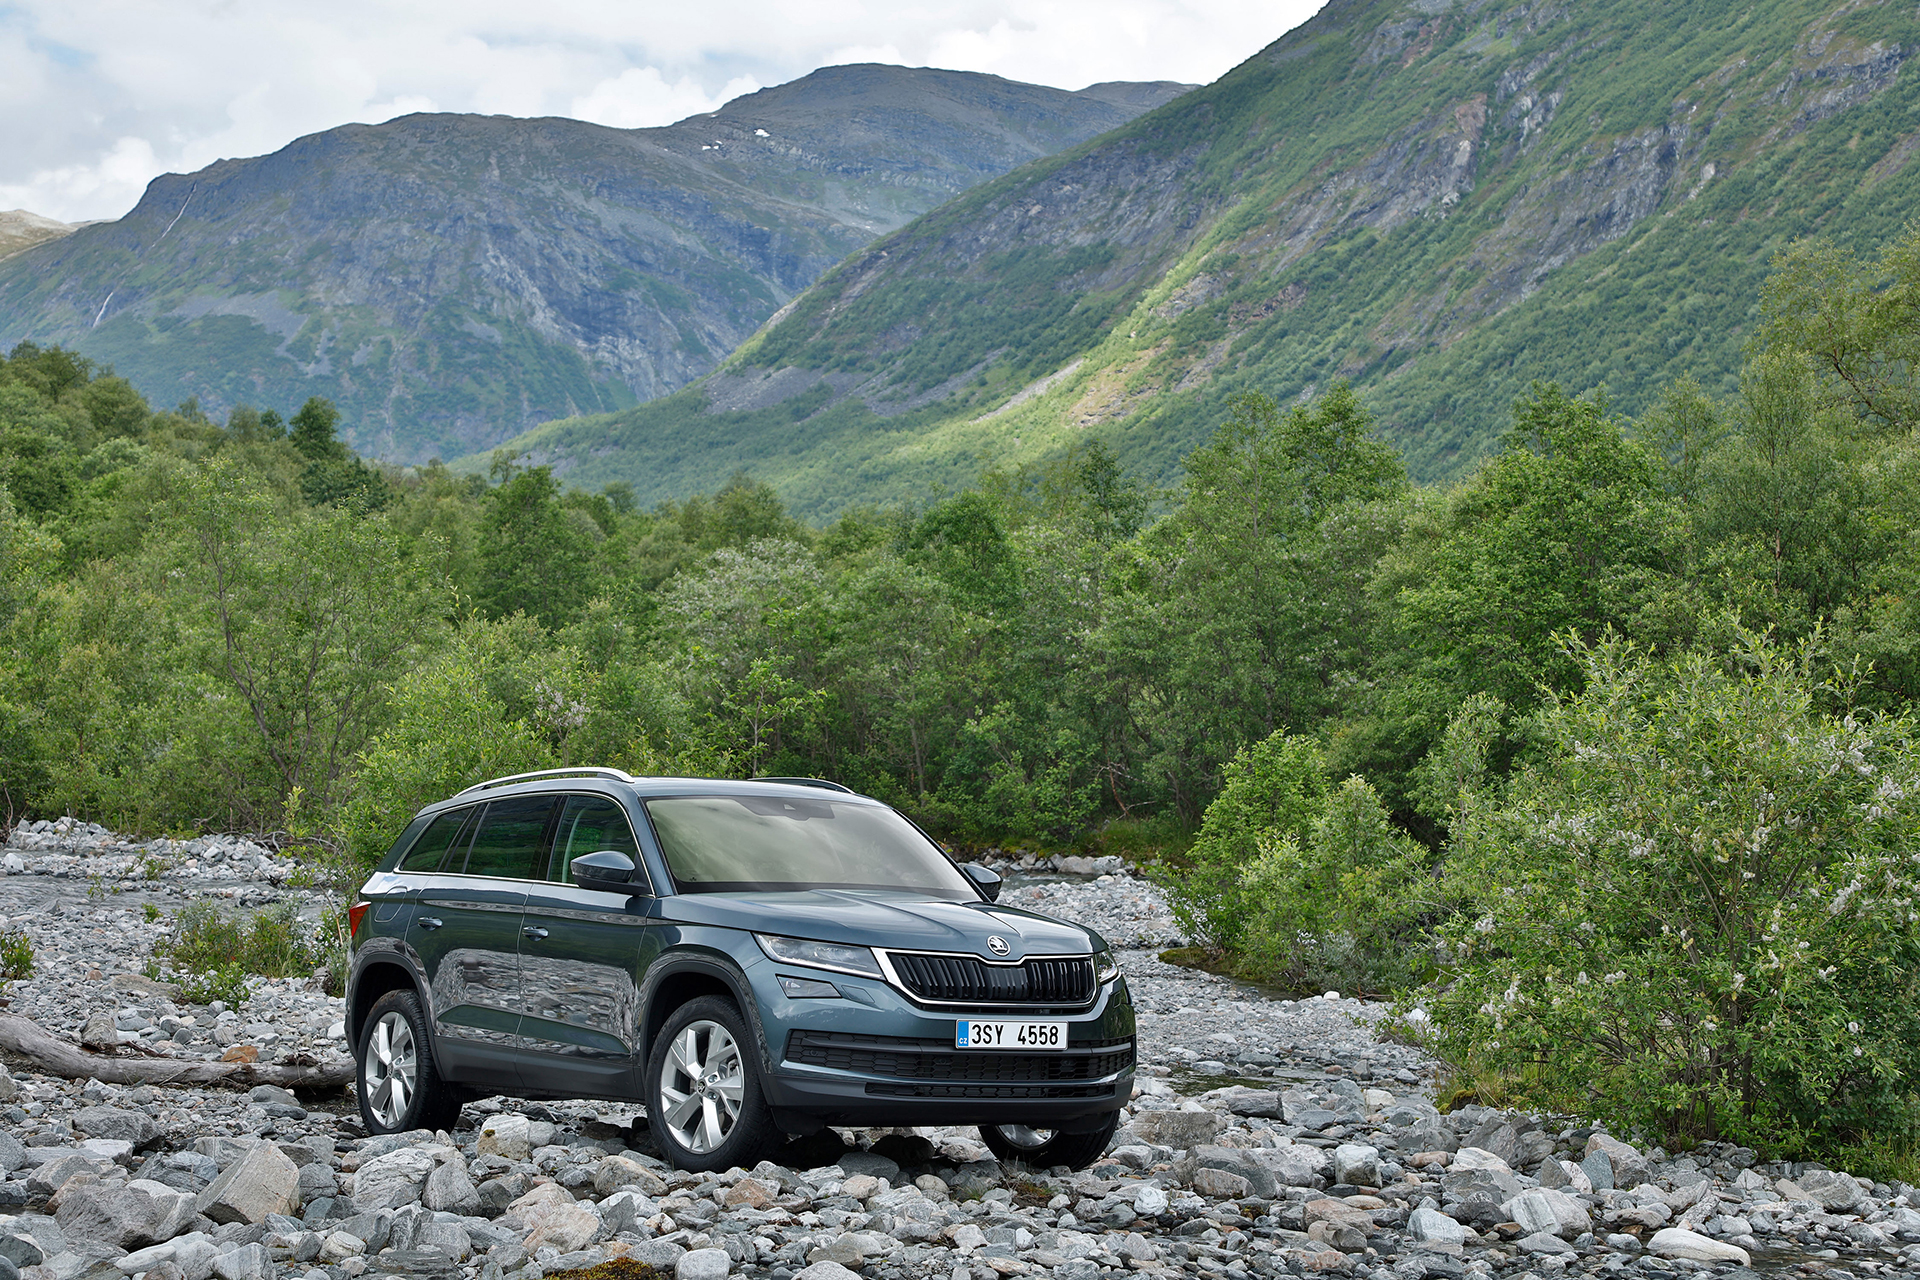 Skoda Kodiaq - 2016 - rock road - photo